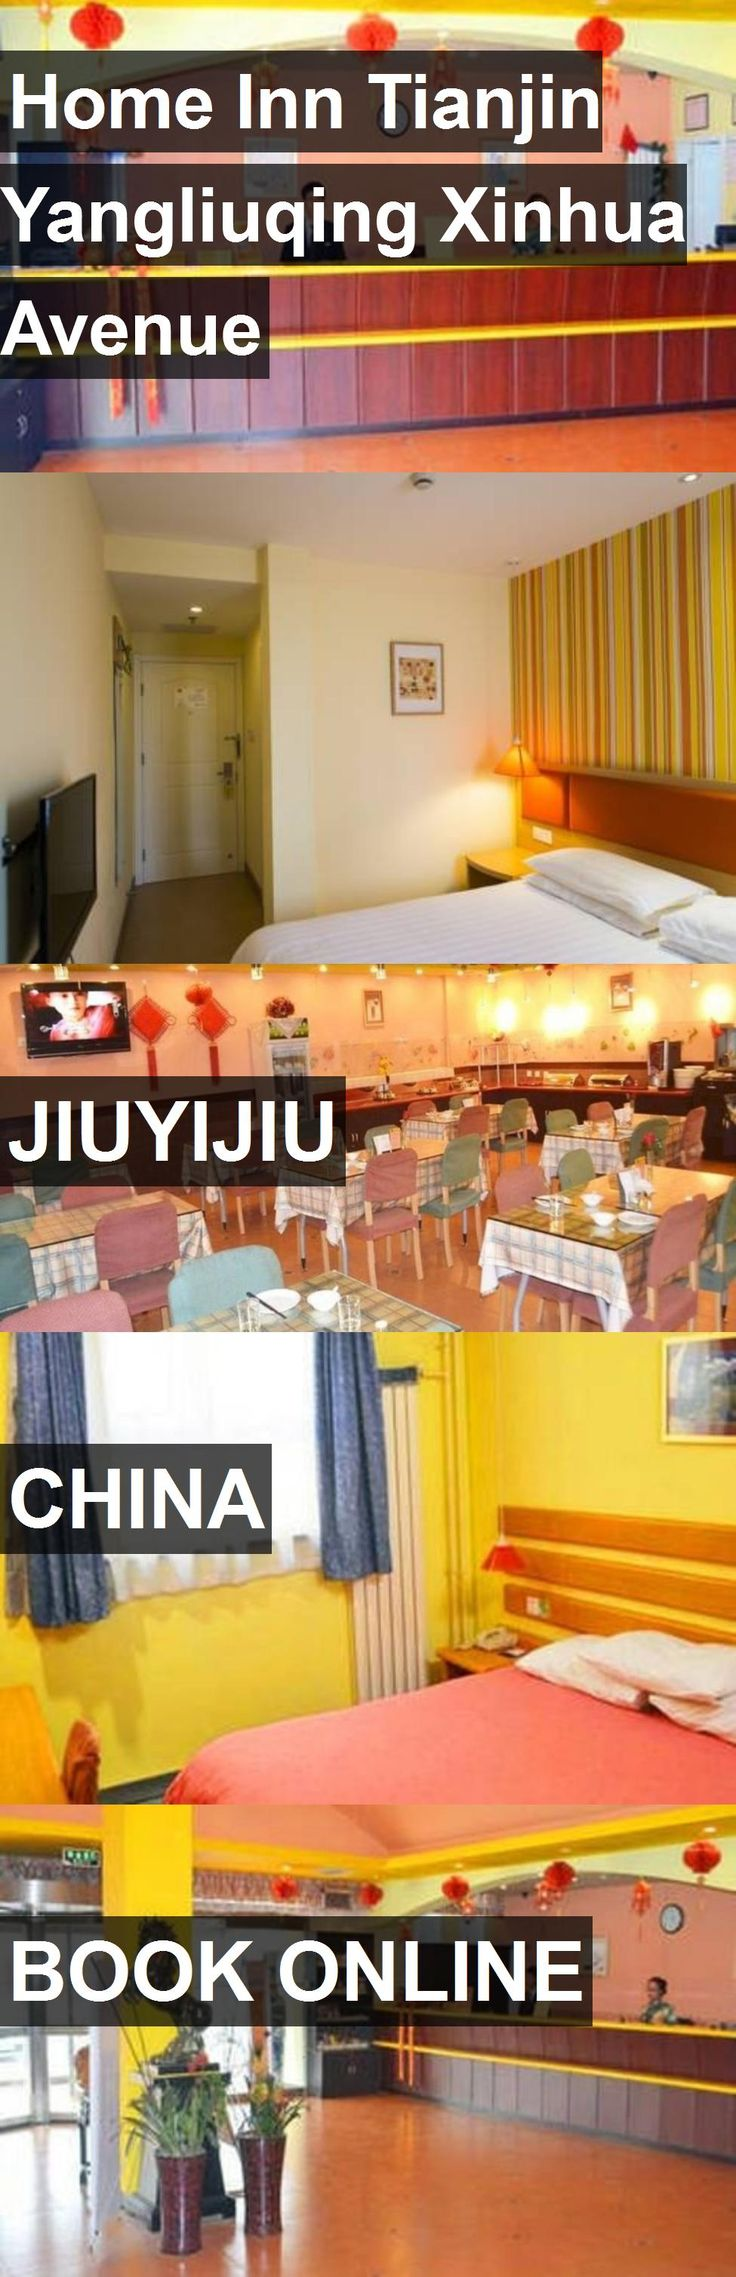 Hotel Home Inn Tianjin Yangliuqing Xinhua Avenue in Jiuyijiu, China. For more information, photos, reviews and best prices please follow the link. #China #Jiuyijiu #HomeInnTianjinYangliuqingXinhuaAvenue #hotel #travel #vacation